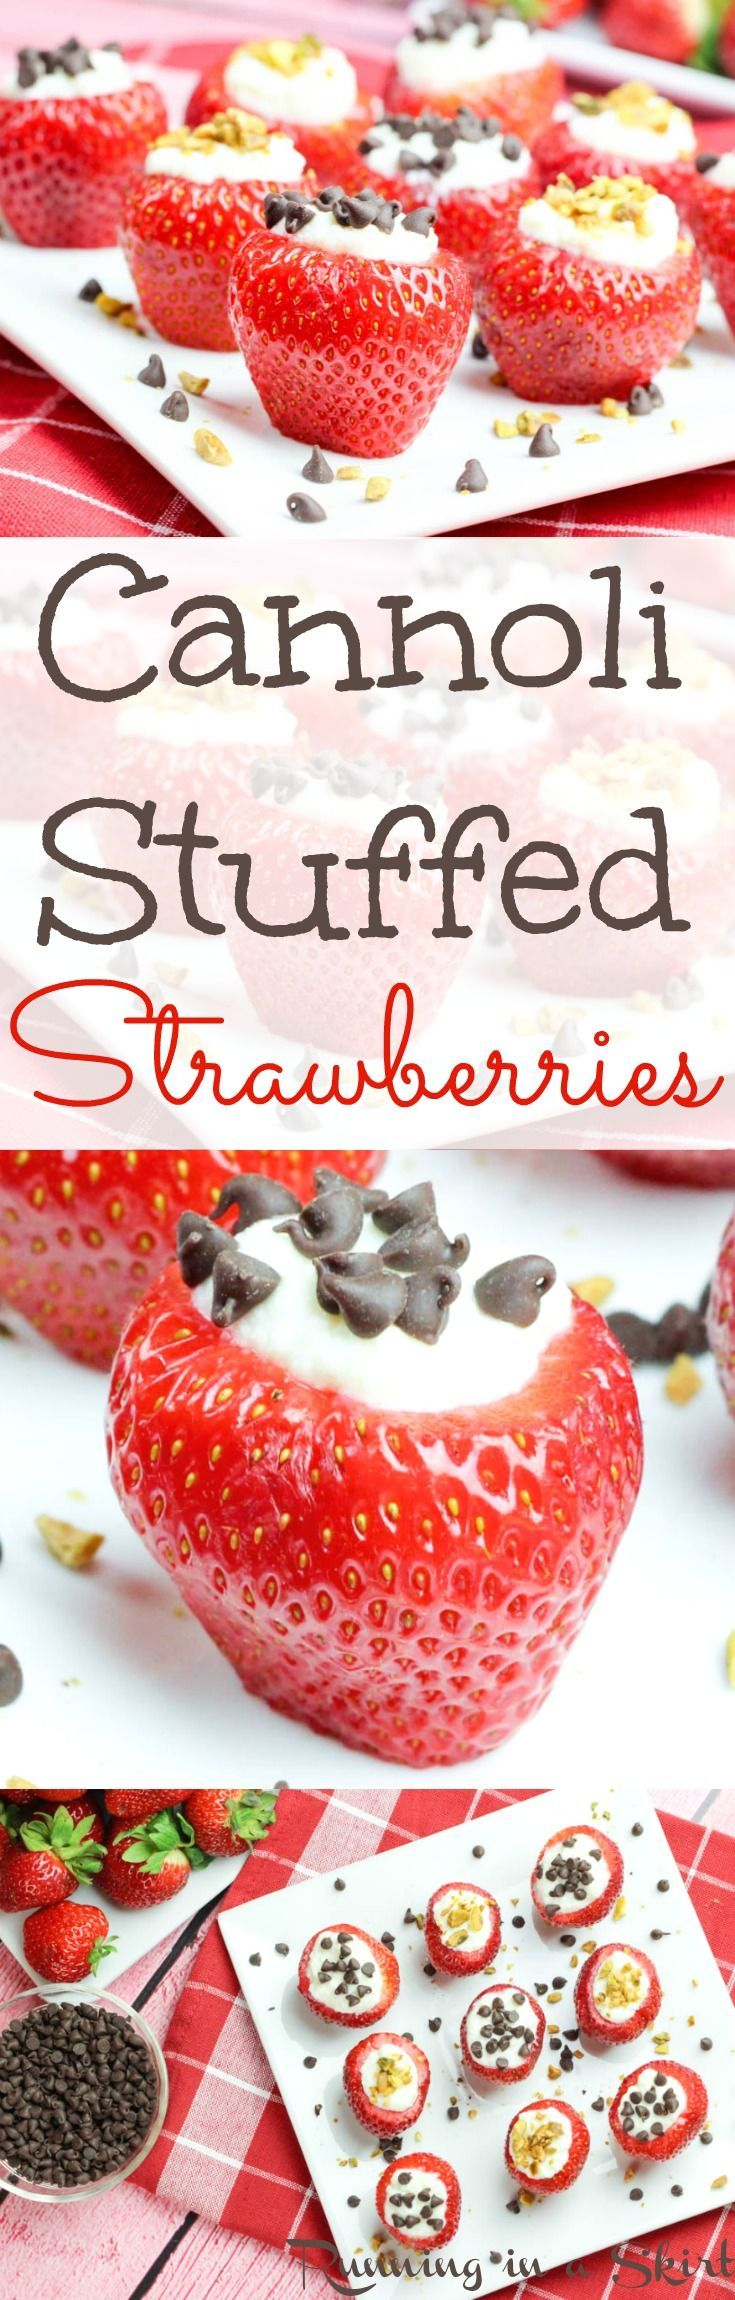 Easy Cannoli Stuffed Strawberries recipe. A healthy twist on the classic cannoli flavors! Uses lowfat ricotta and makes a great low carb dessert. Perfect for summer parties, 4th of July or just for fun. | Running in a Skirt